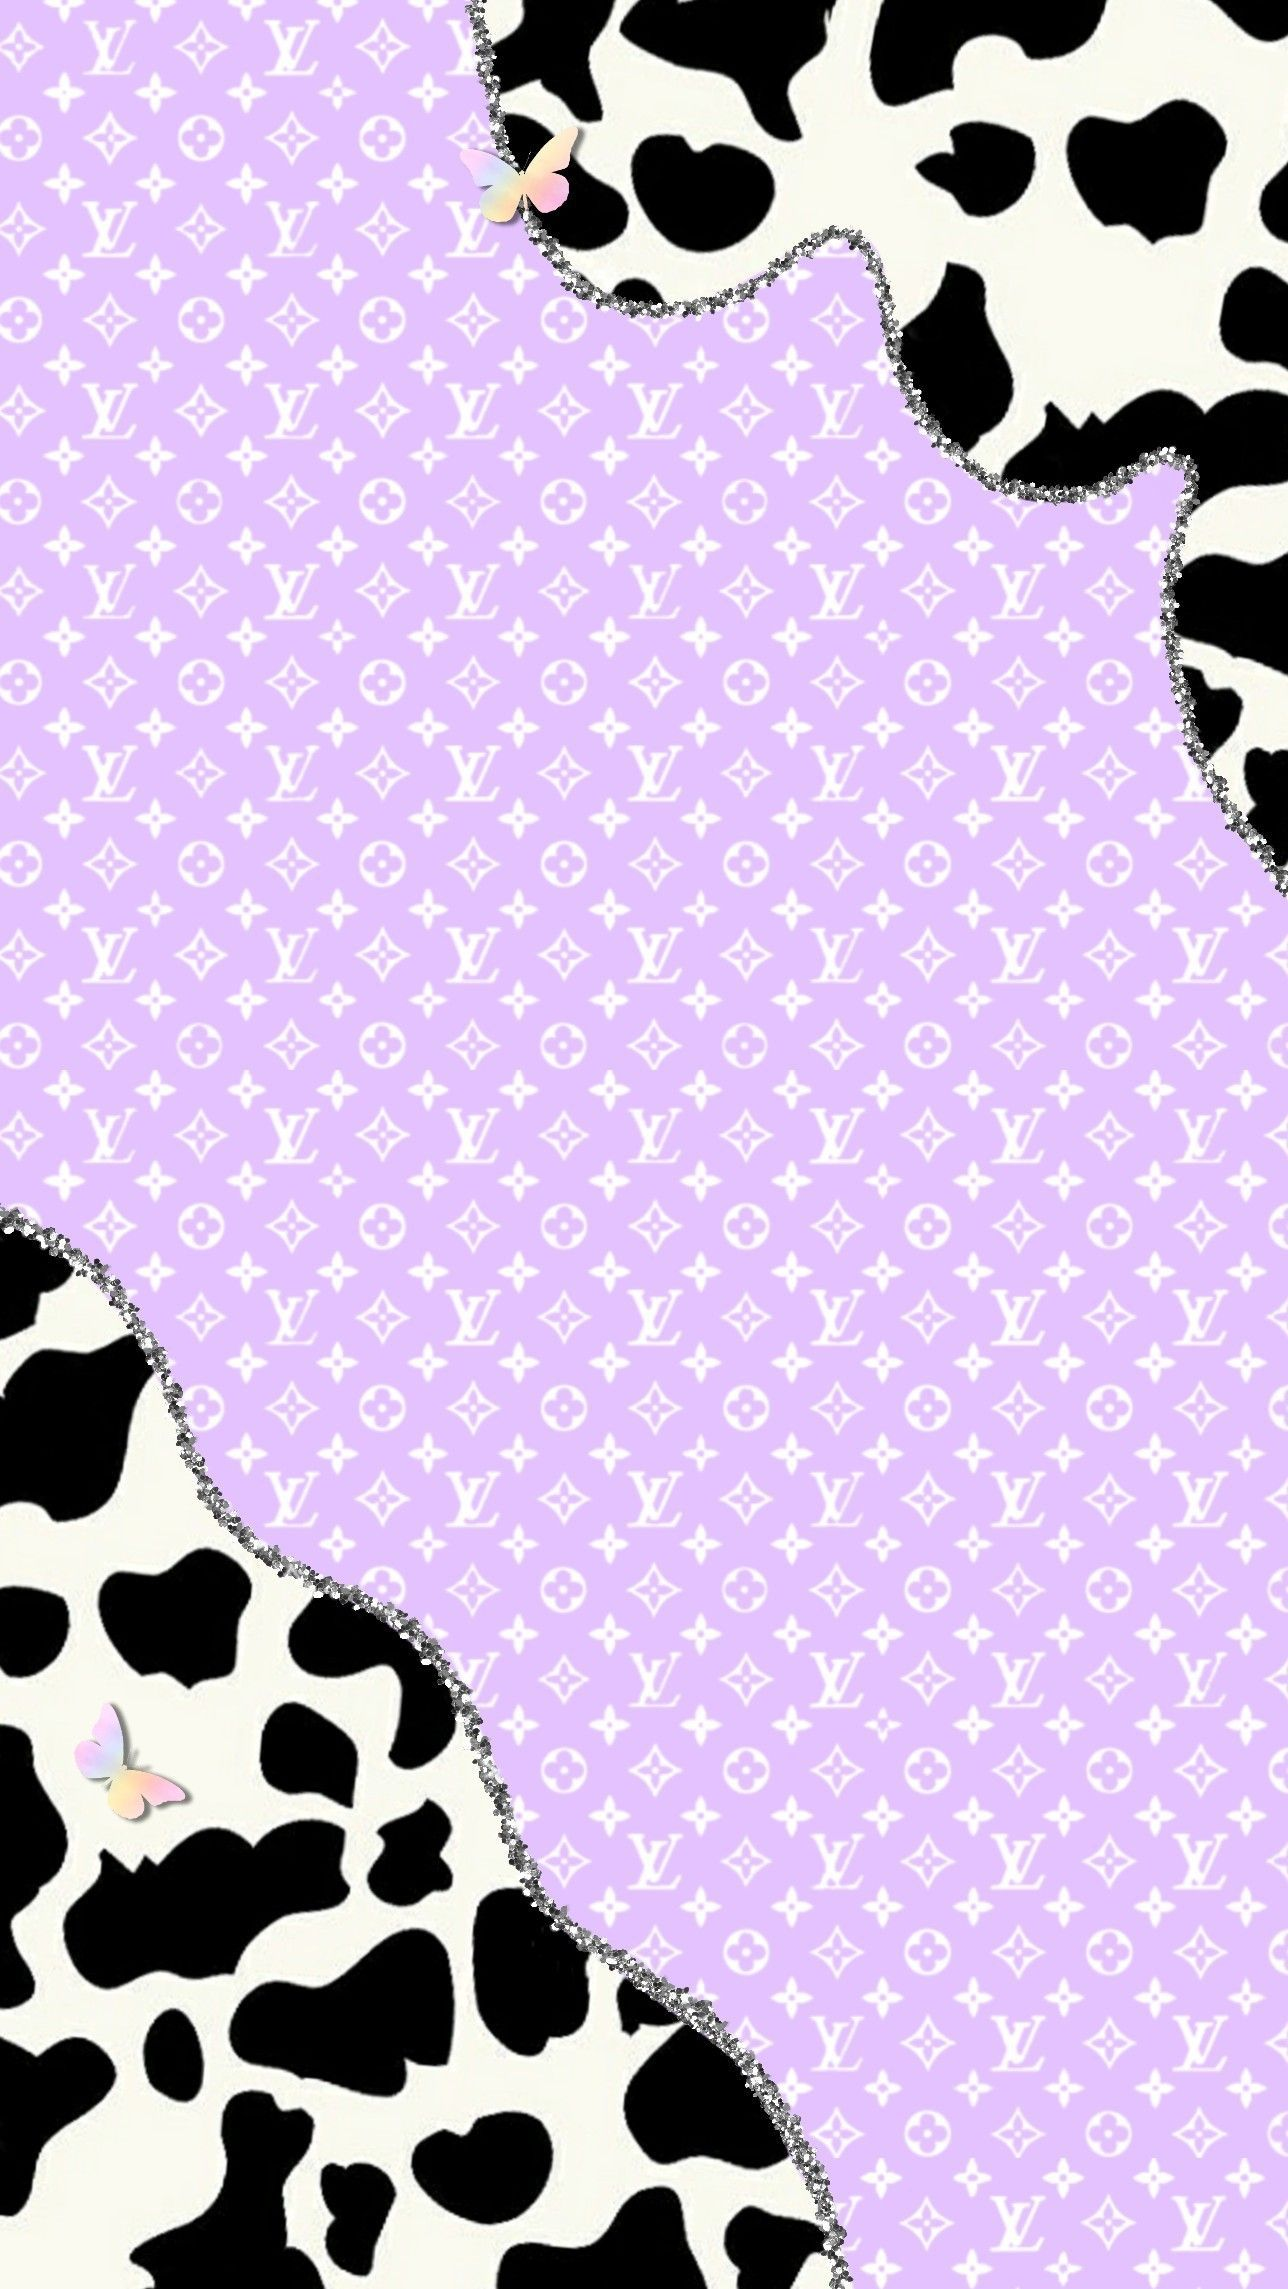 Purple Cow Print Wallpapers Wallpaper Cave The great collection of cow print wallpaper for desktop, laptop and mobiles. purple cow print wallpapers wallpaper